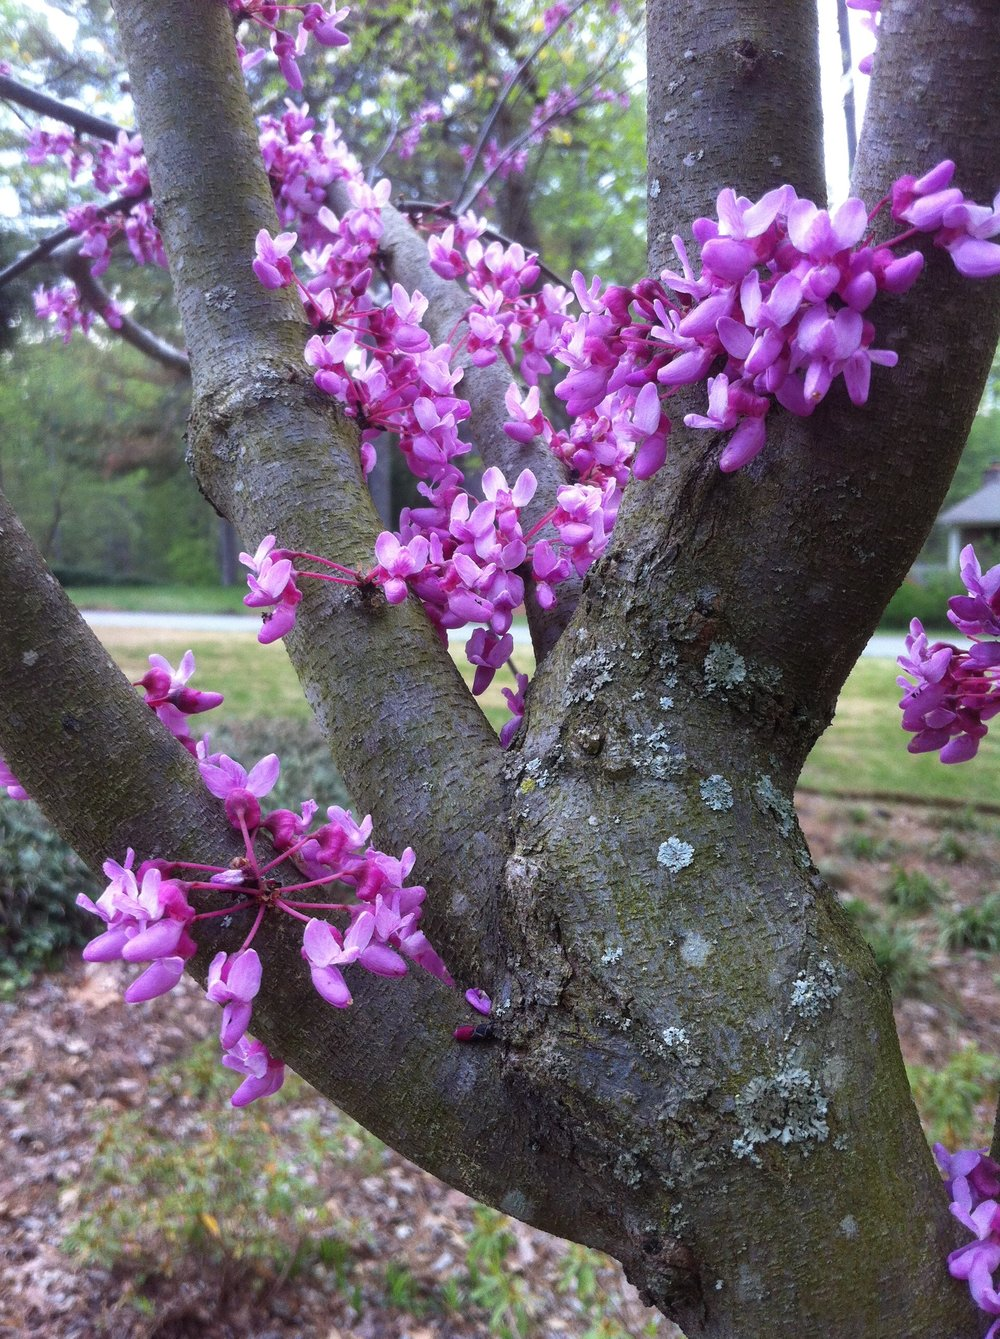 One of our redbud trees.